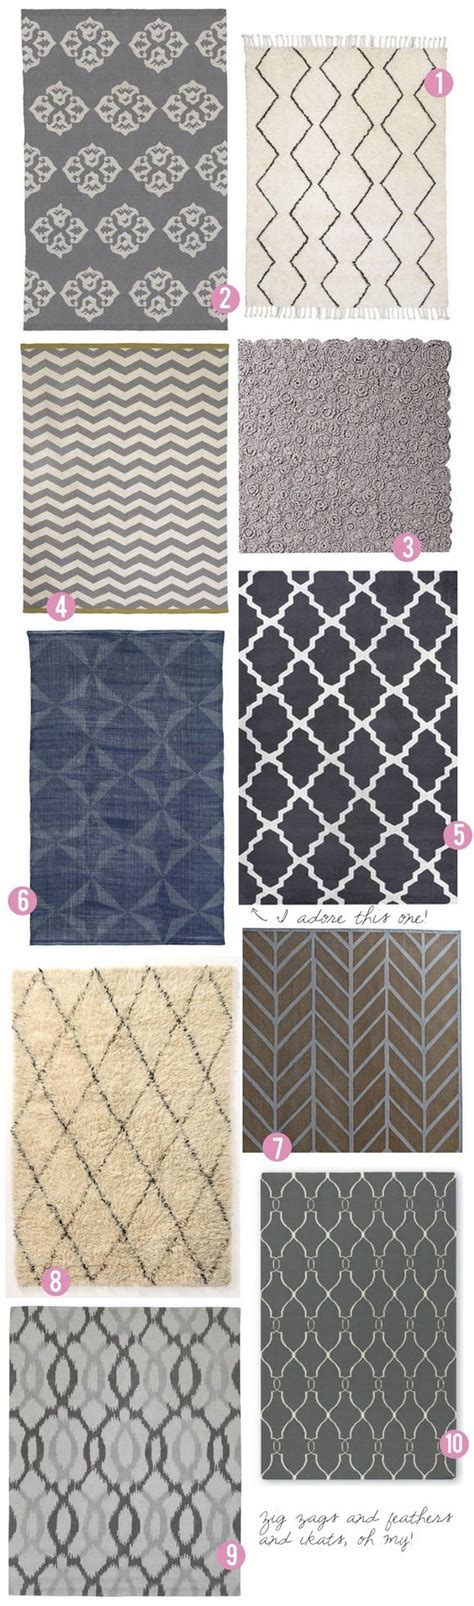 bogart flat weave wool rug 17 best images about living room dining room inspiration for on dhurrie rugs